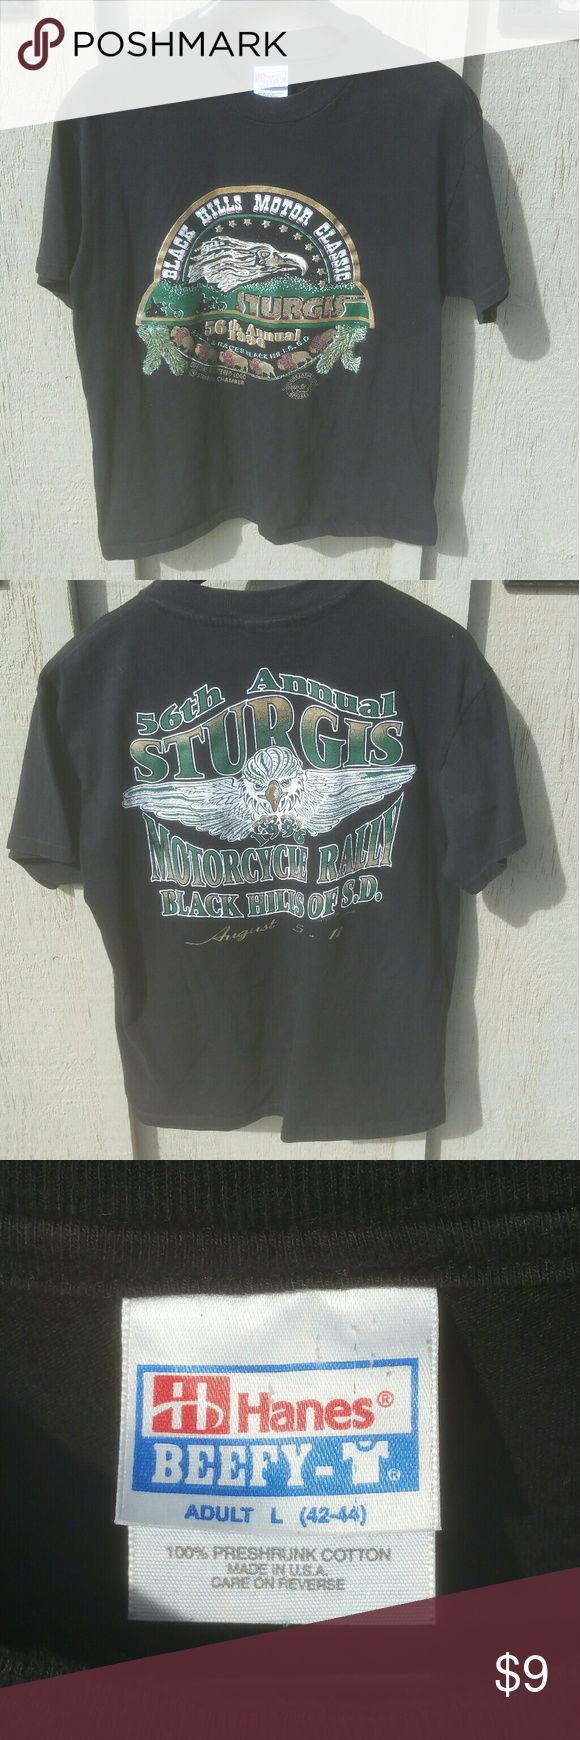 Vintage 56th Annual Sturgis Motorcycle Rally 1996 Vintage 56th Annual Sturgis Motorcycle Rally 1996 in excellent condition. Shirts Tees - Short Sleeve